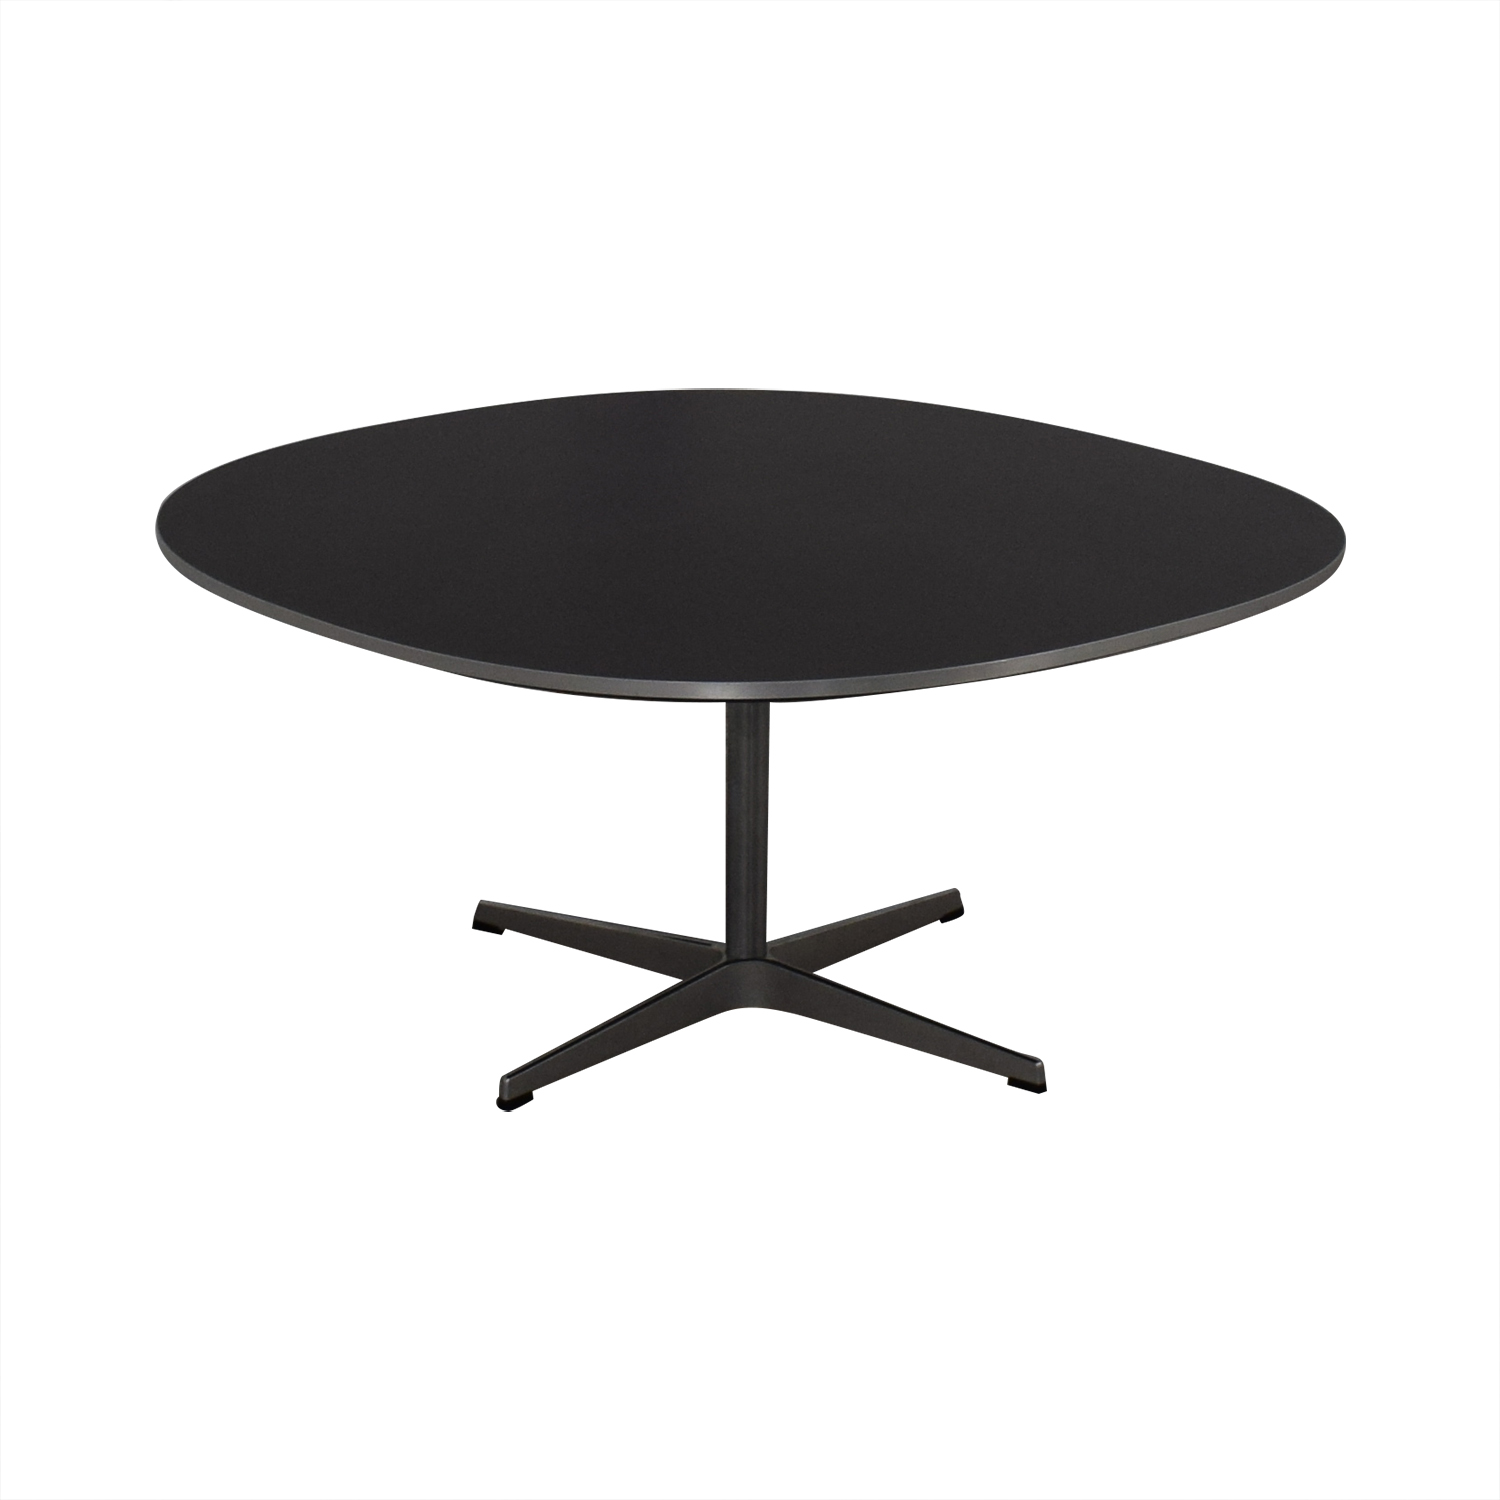 Fritz Hansen Piet Hein Superellipse Coffee Table / Coffee Tables